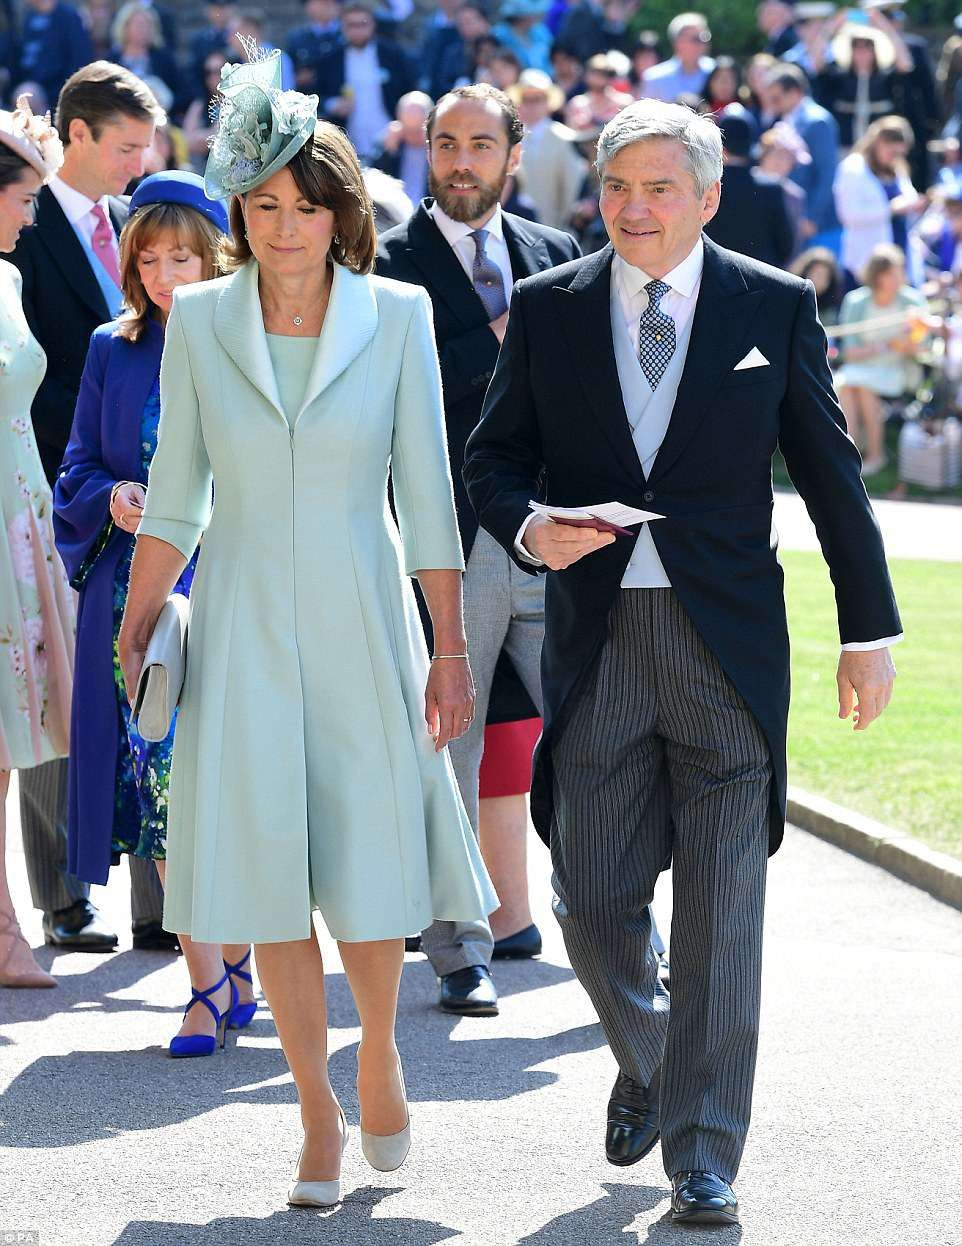 Queen Is Flanked By Prince Philip As They Attend Royal Wedding